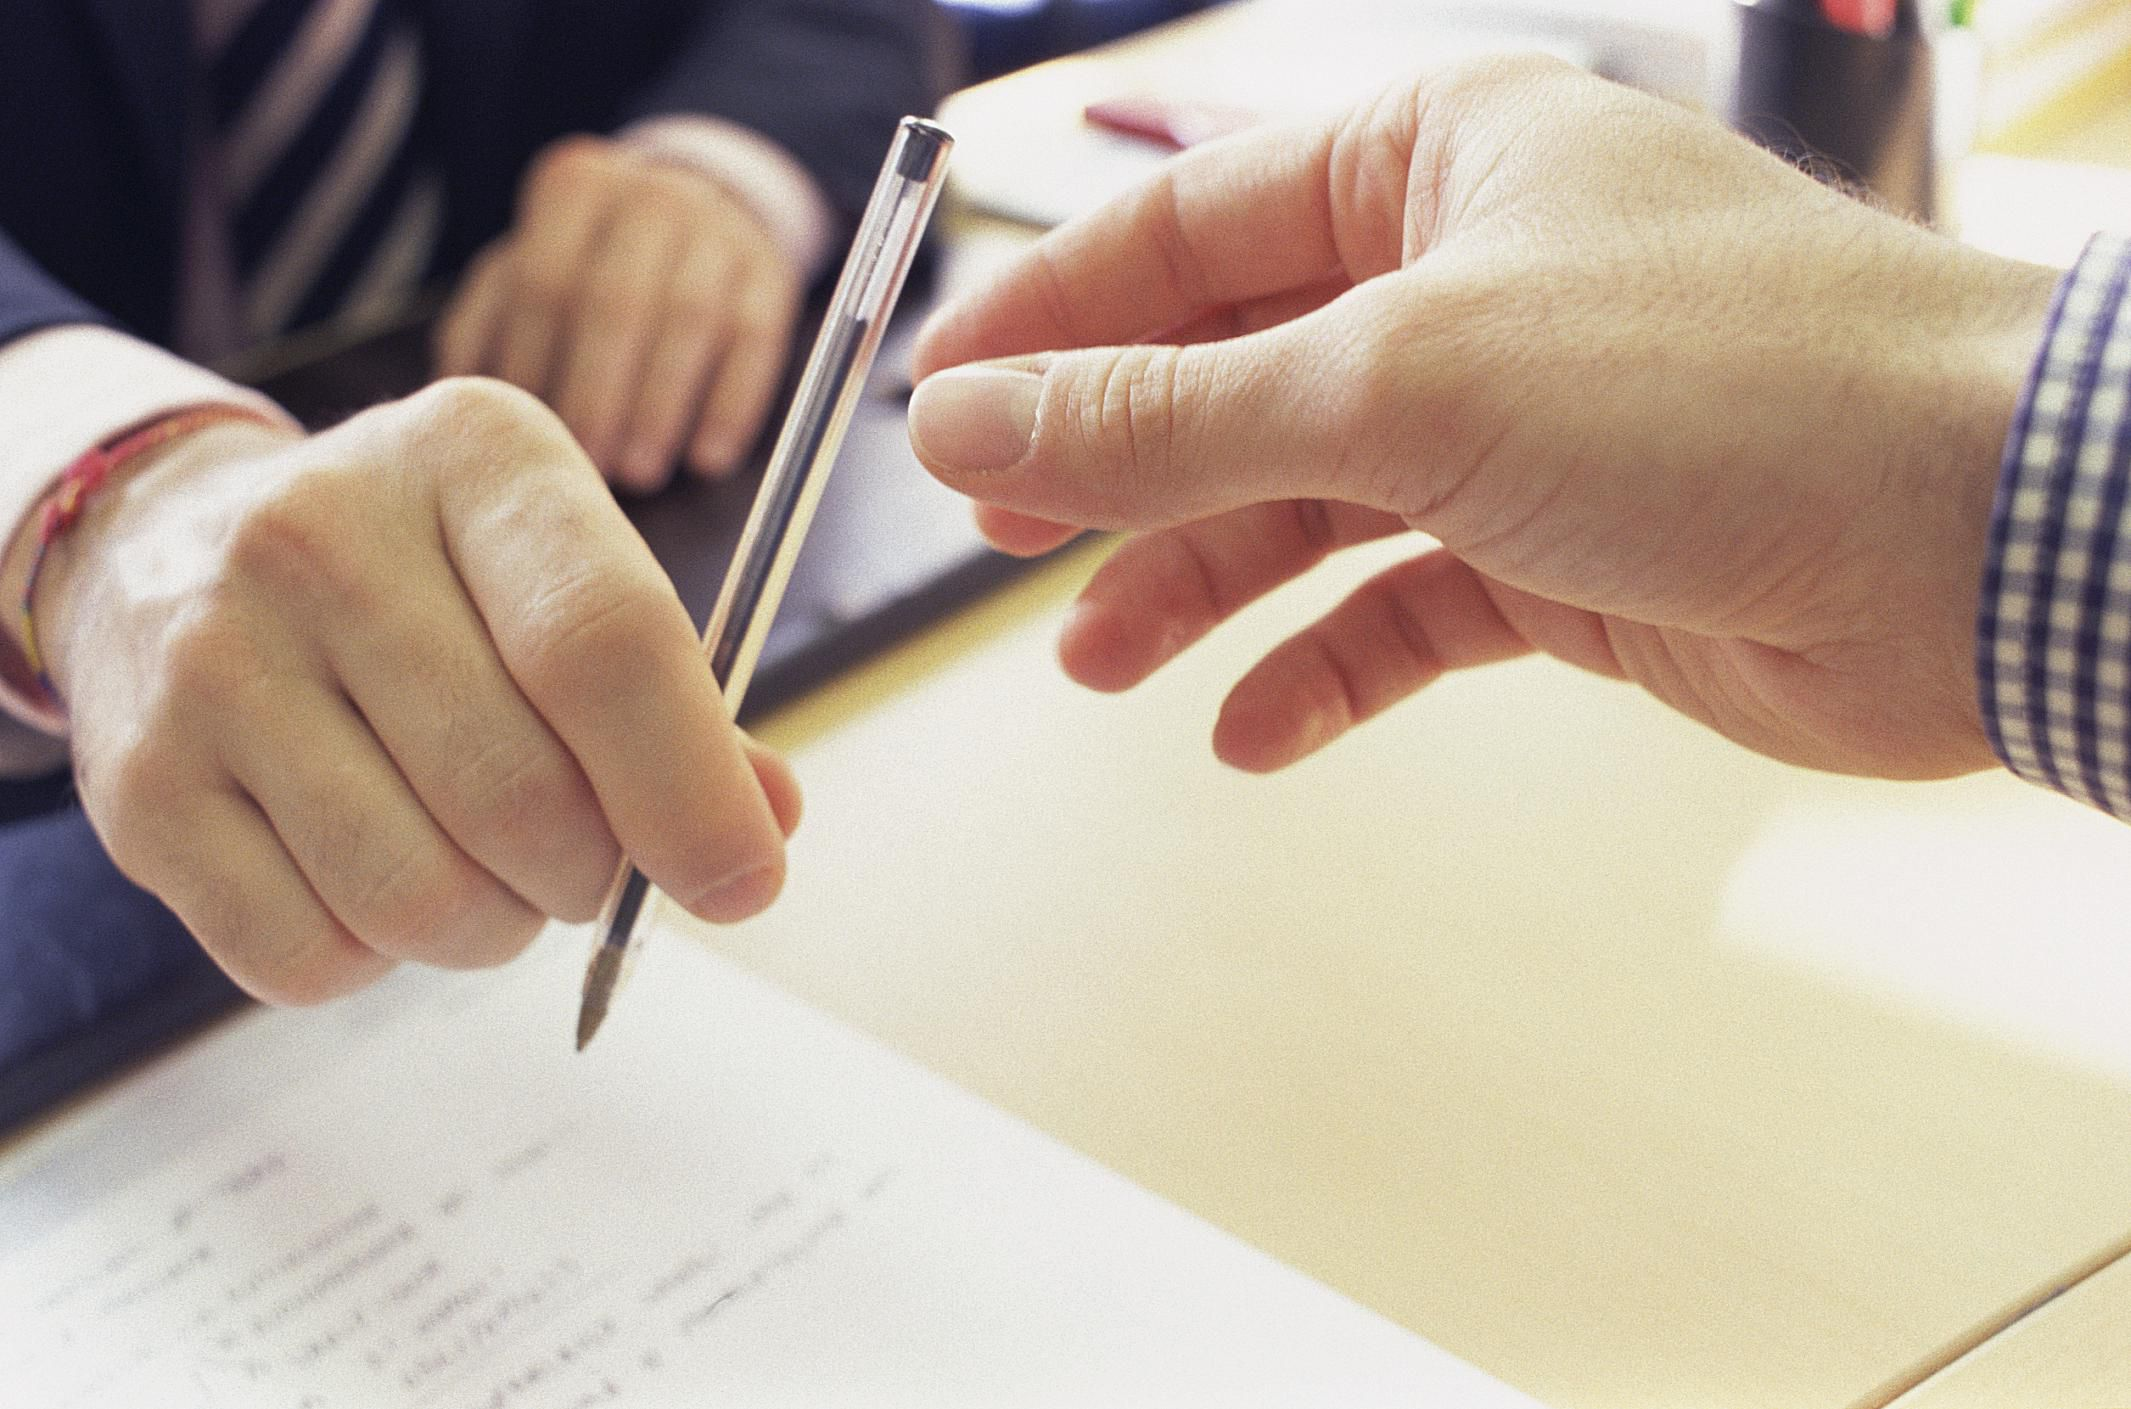 6 Questions To Ask Before Accepting A Job Offer